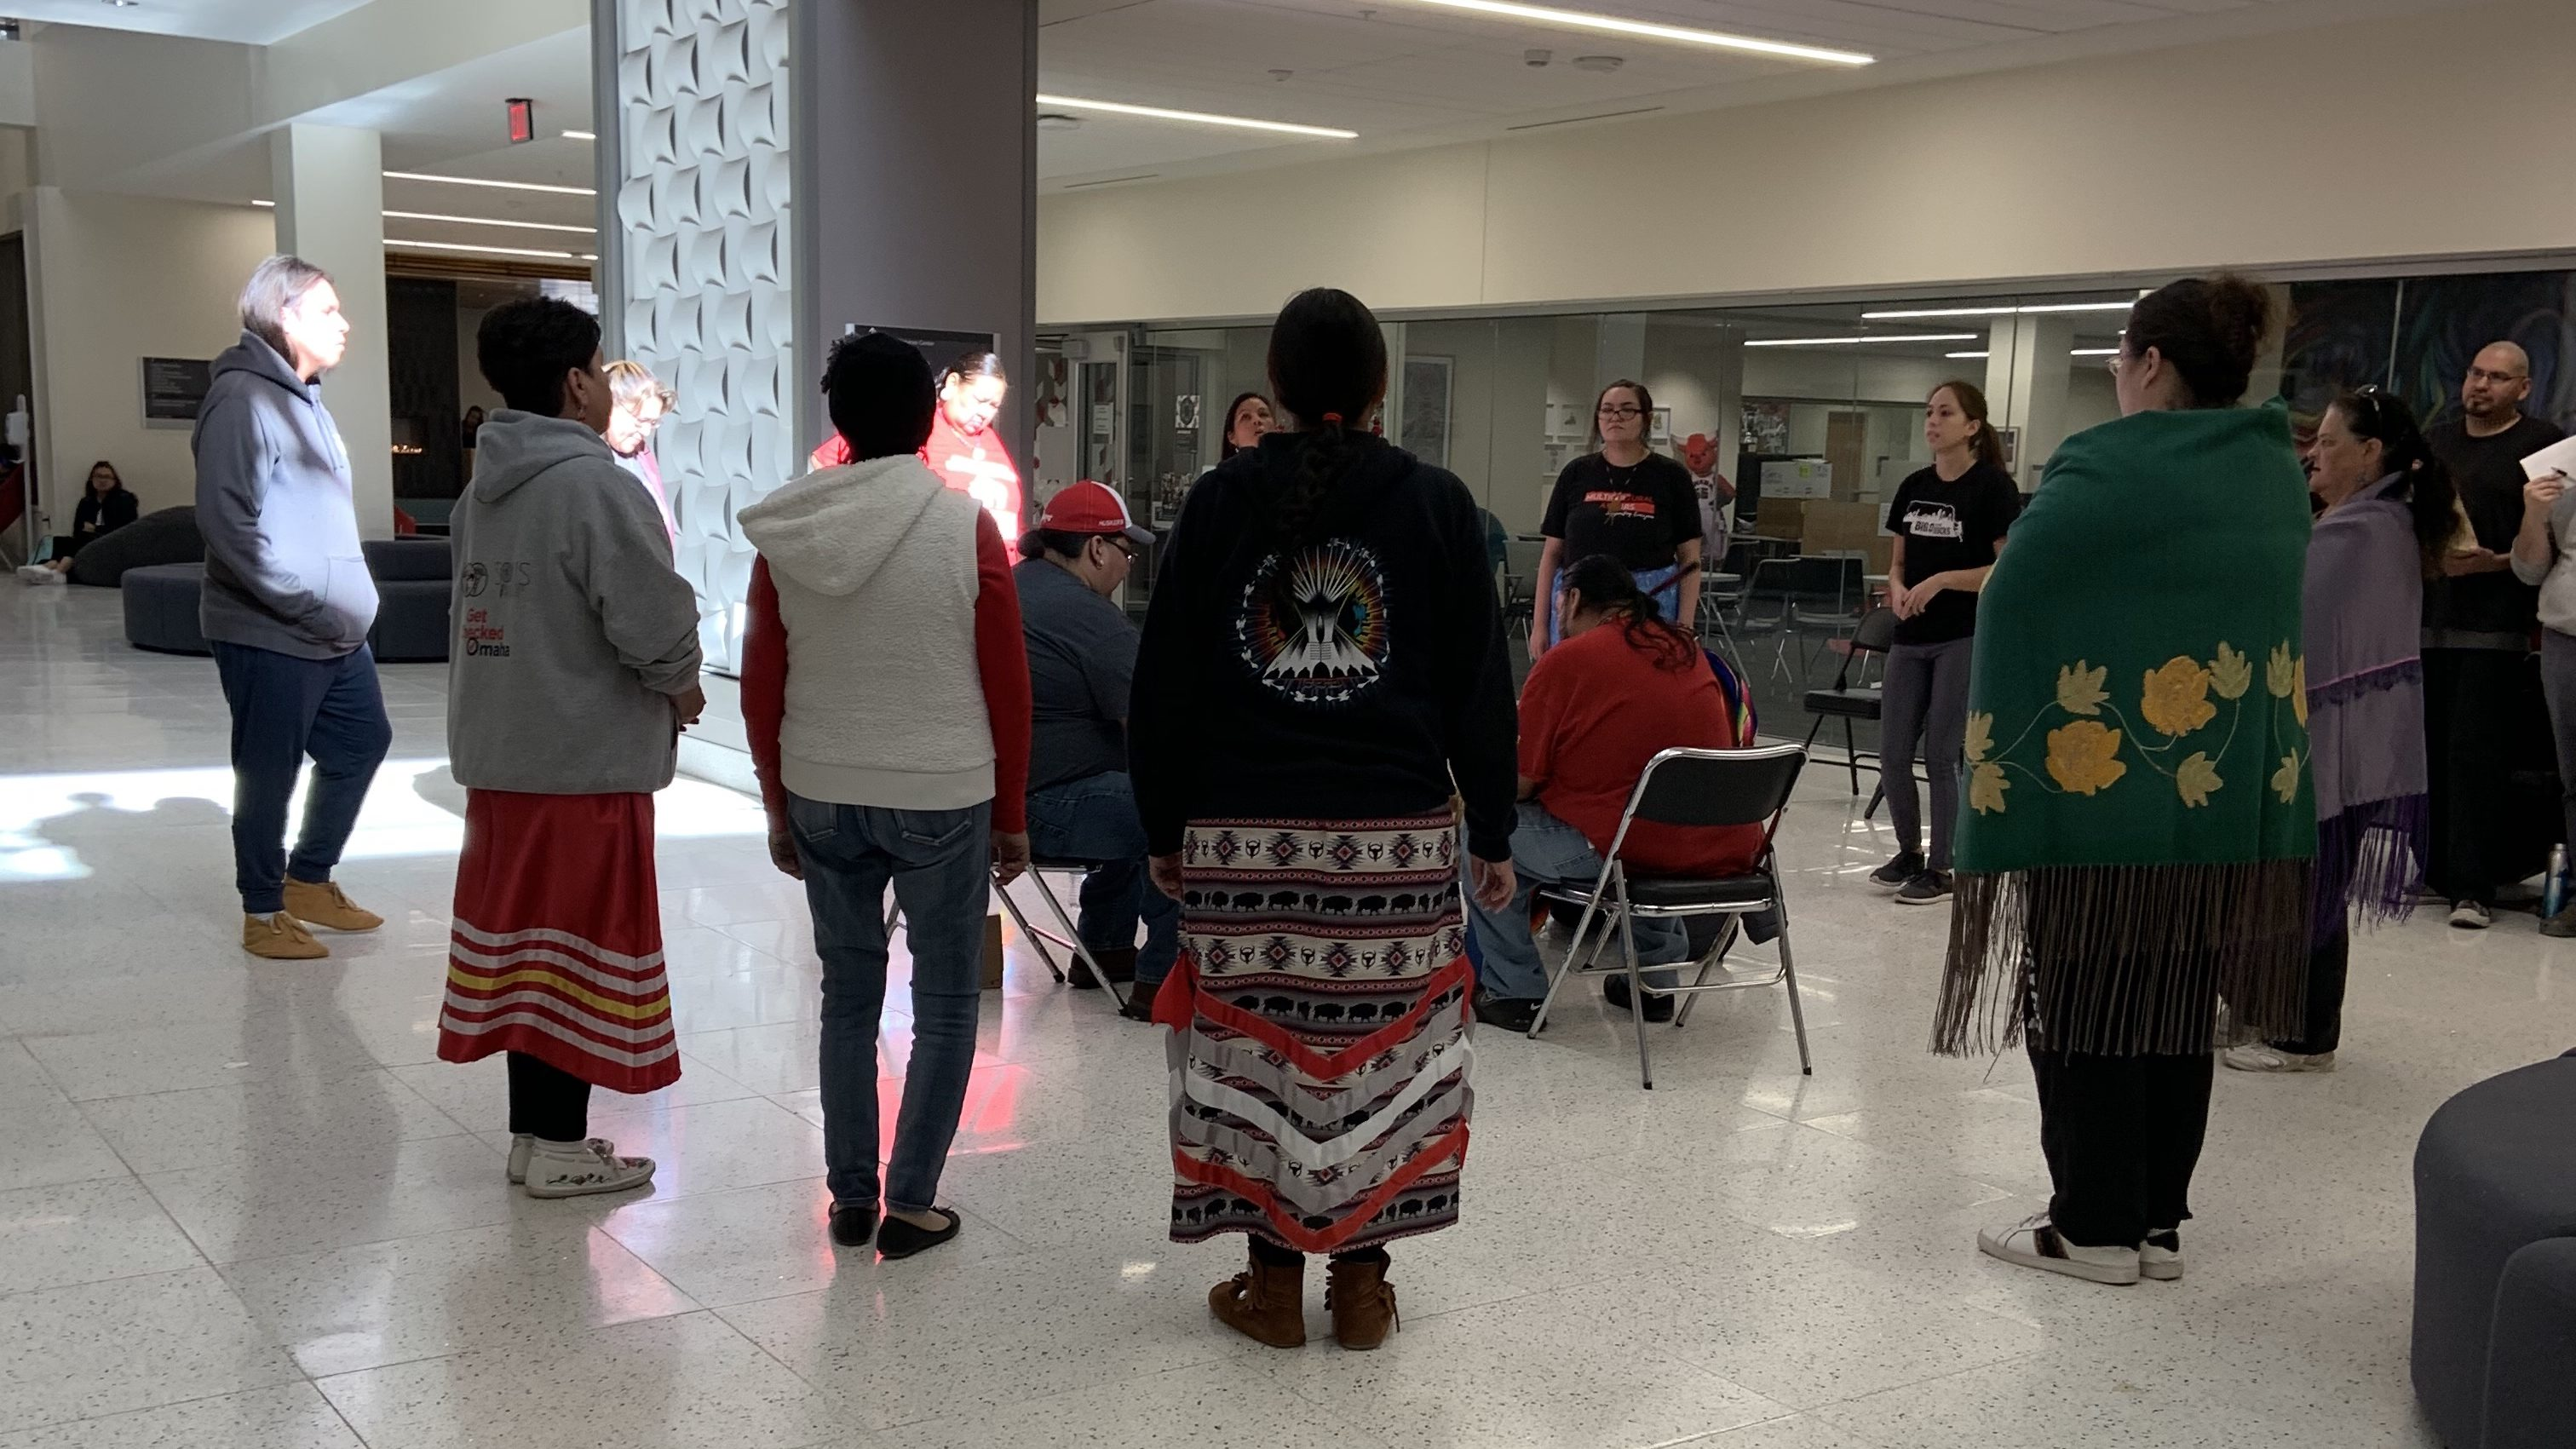 Members of the ITSC perform a traditional dance in Milo Bail Student Center.